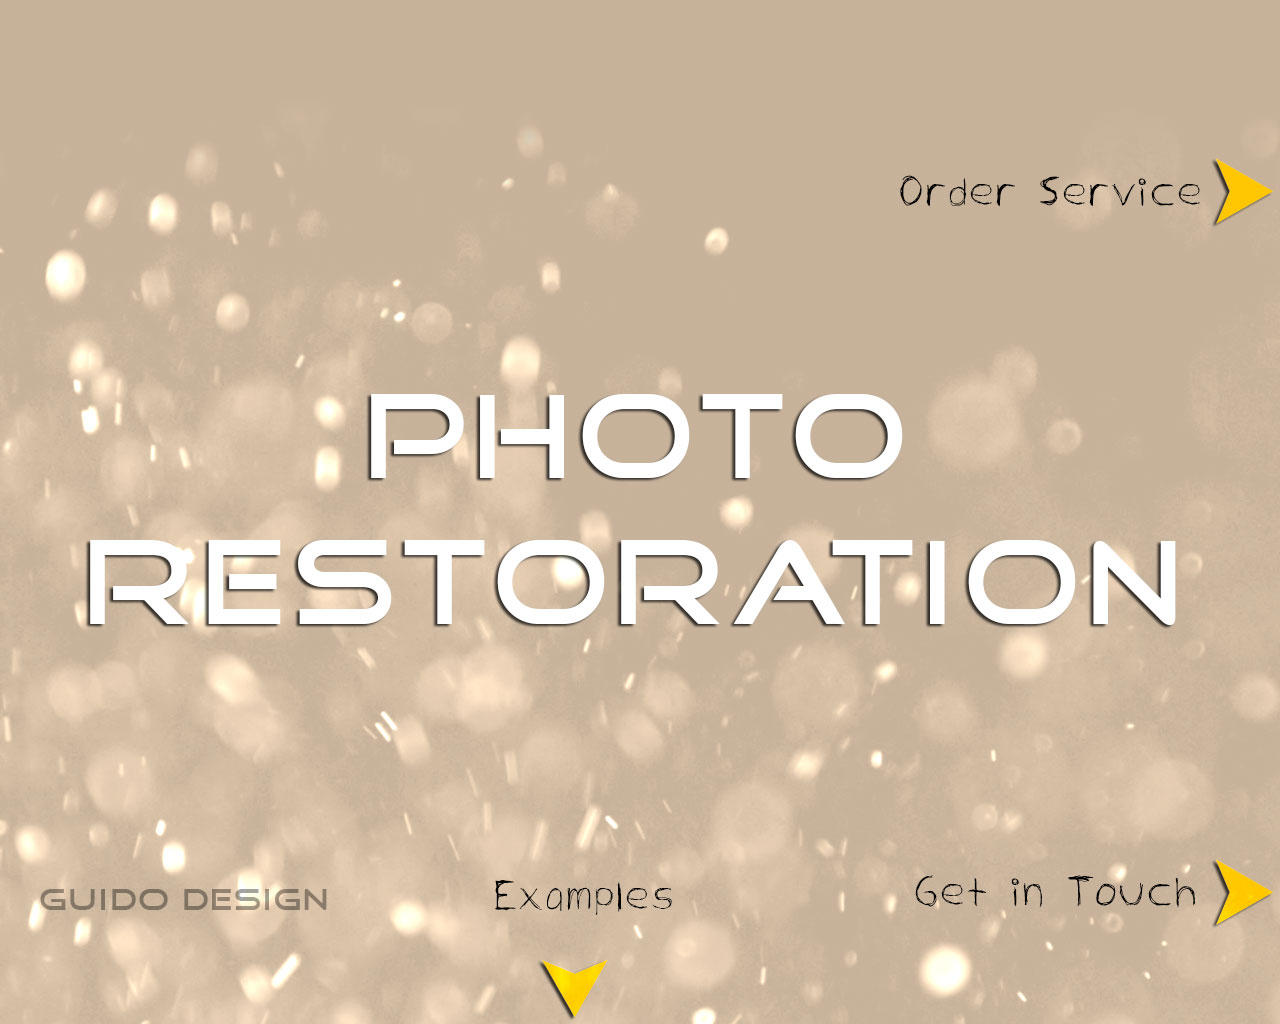 Photo Restoration by GuidoDesign - 65945